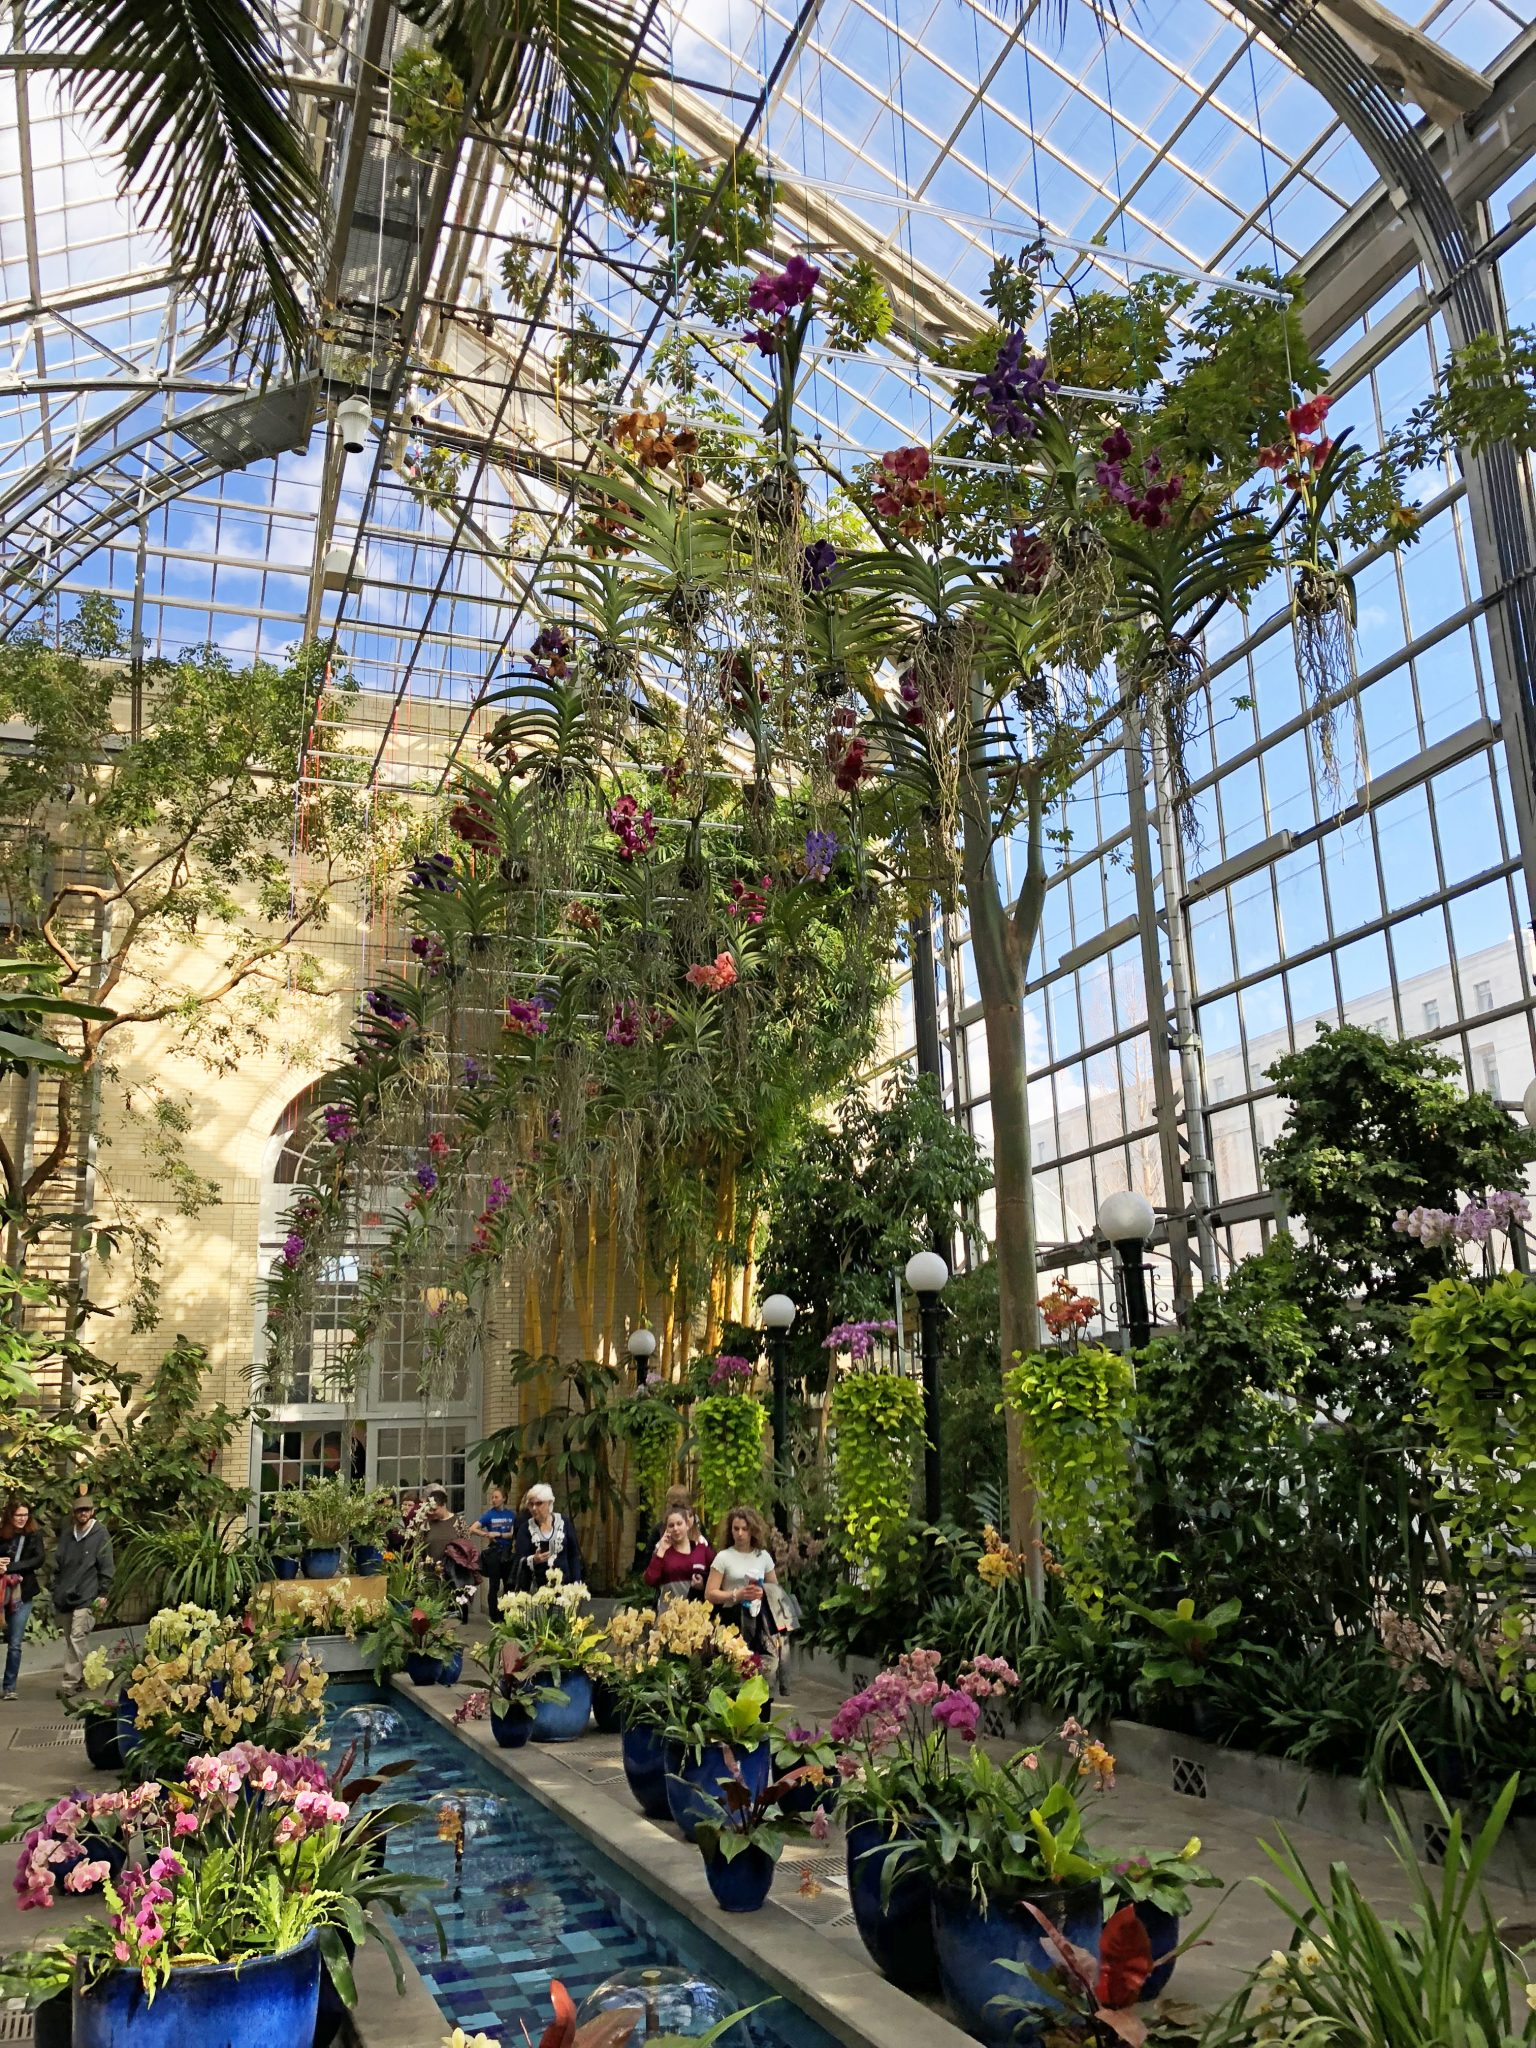 Botanic gardens with lush flowers and foliage draped inside of glass structure